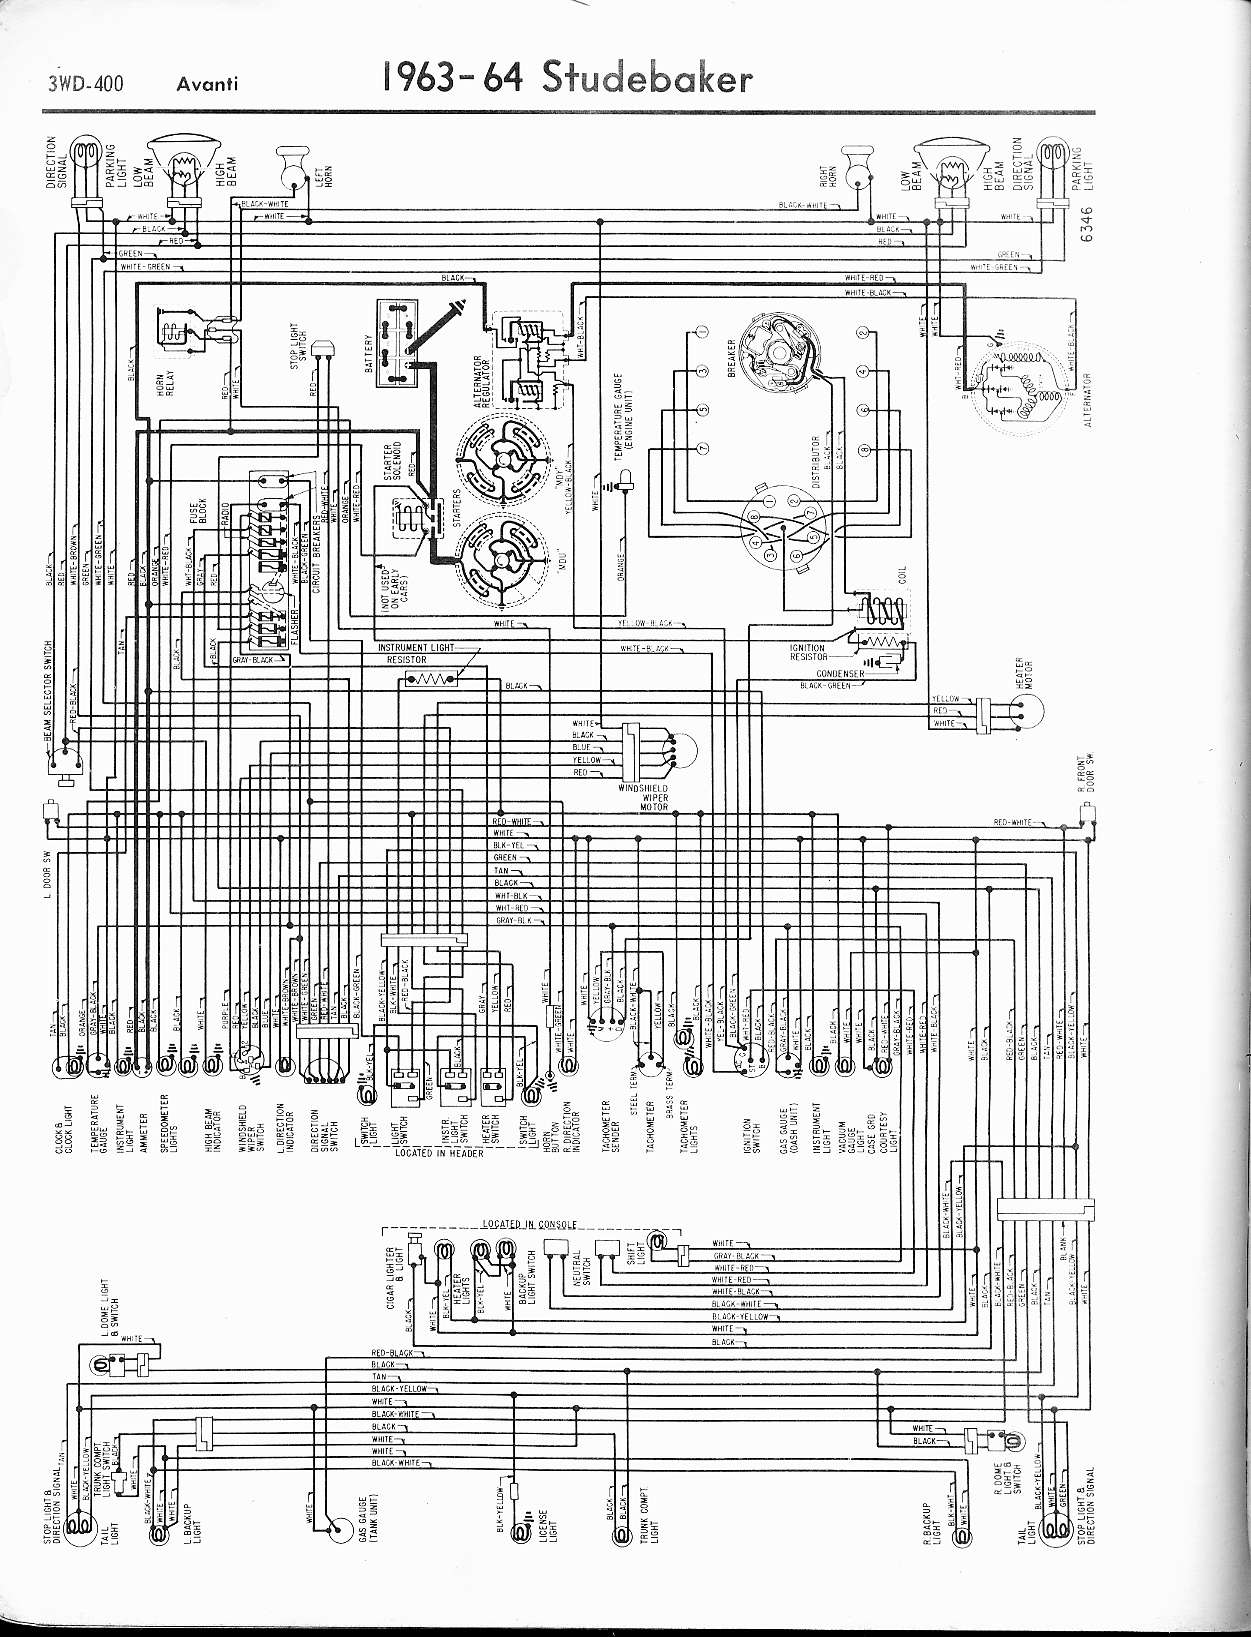 Studebaker wiring diagrams - The Old Car Manual Project on